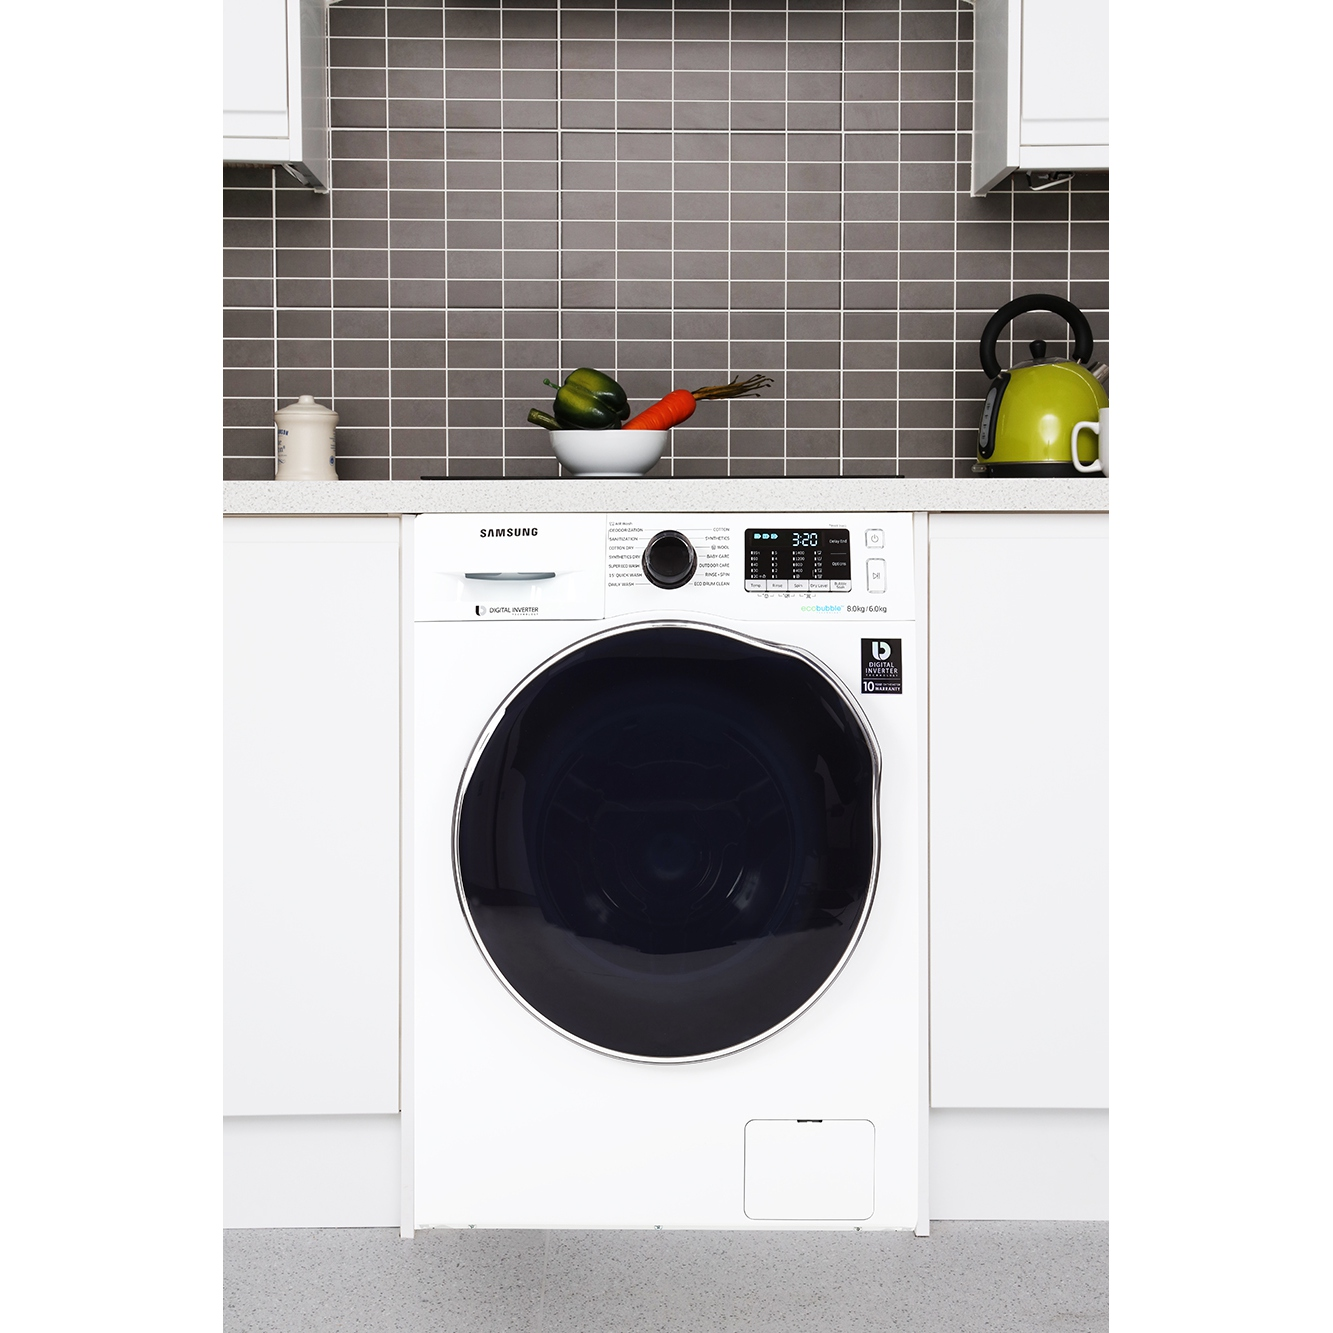 Buy Samsung Wd80j5410aw Washer Dryer White Marks